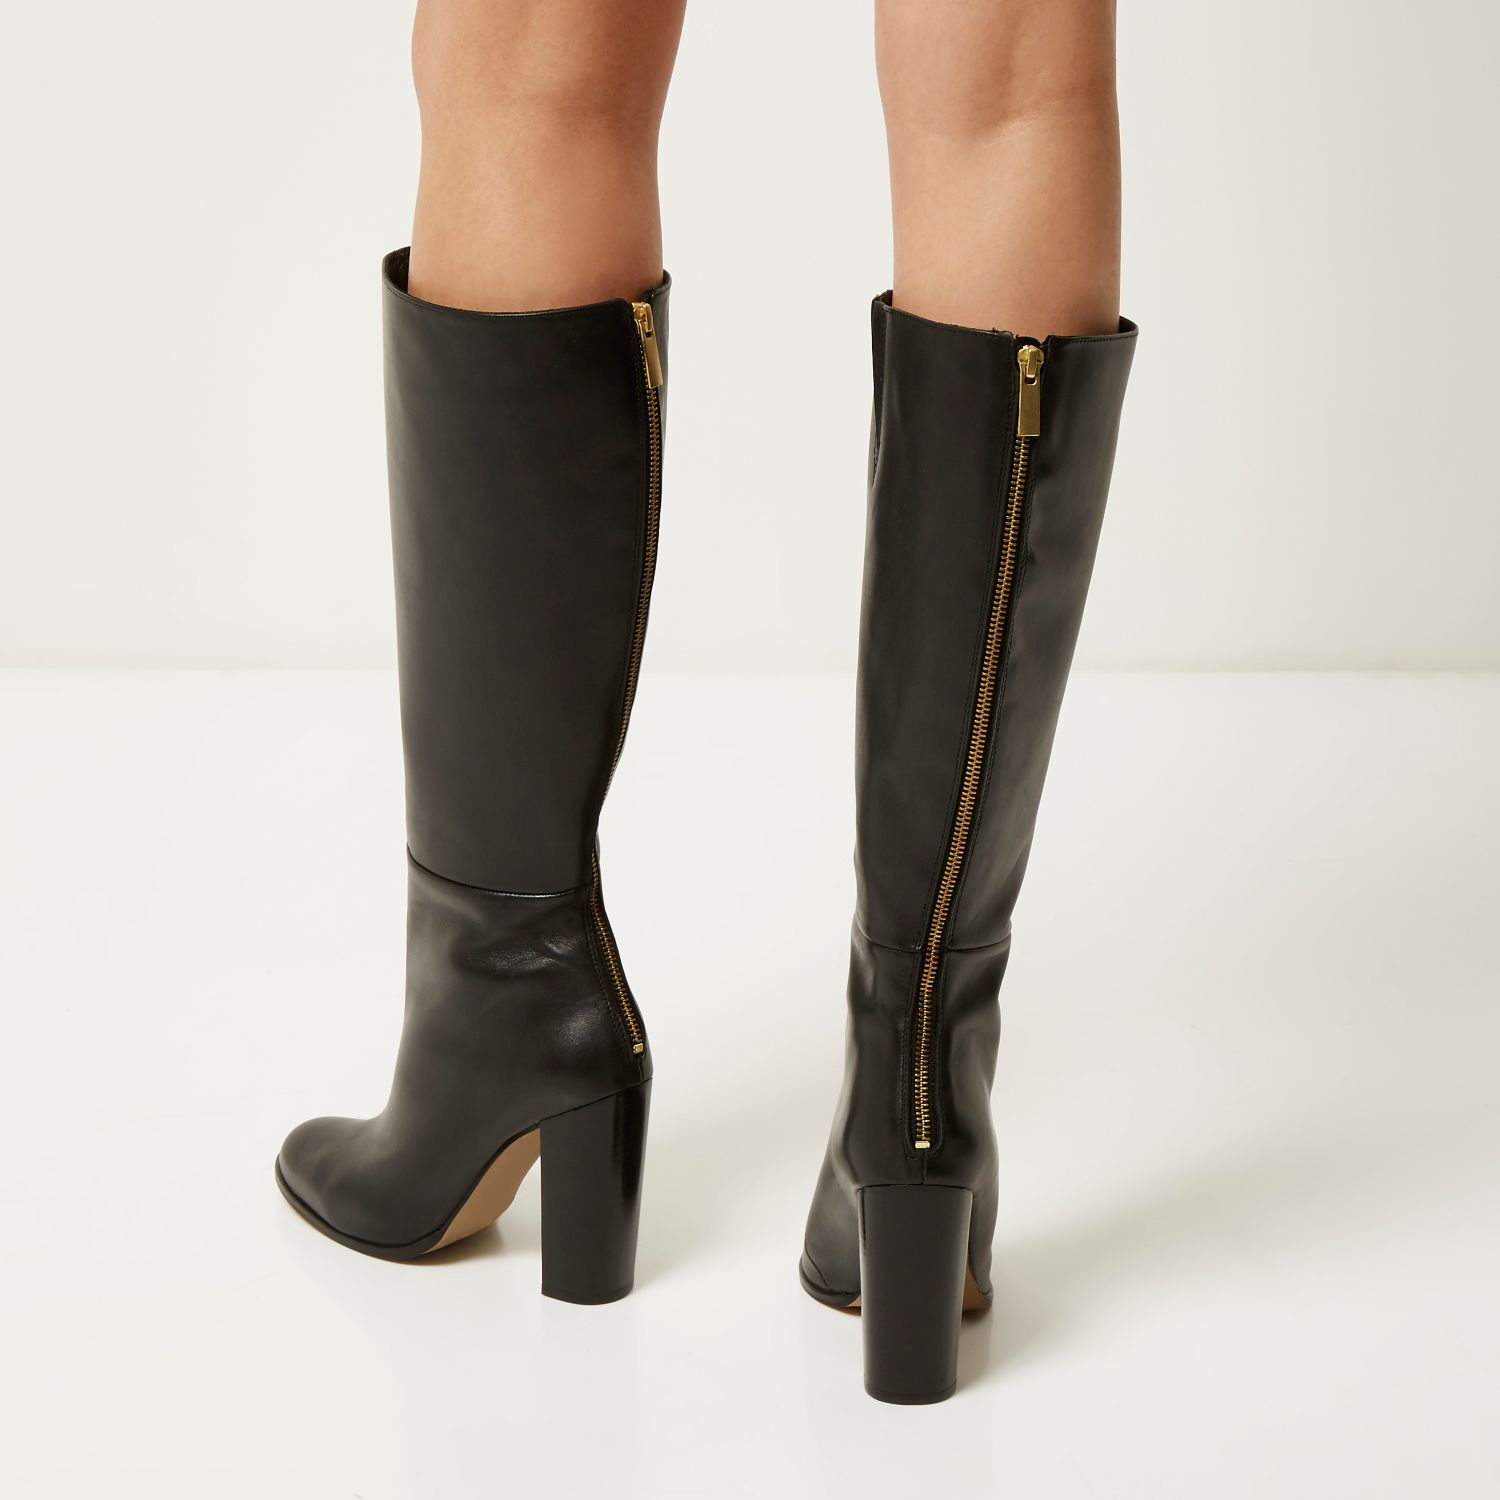 9cef98881b5 Lyst - River Island Black Leather Knee High Heeled Boots in Black